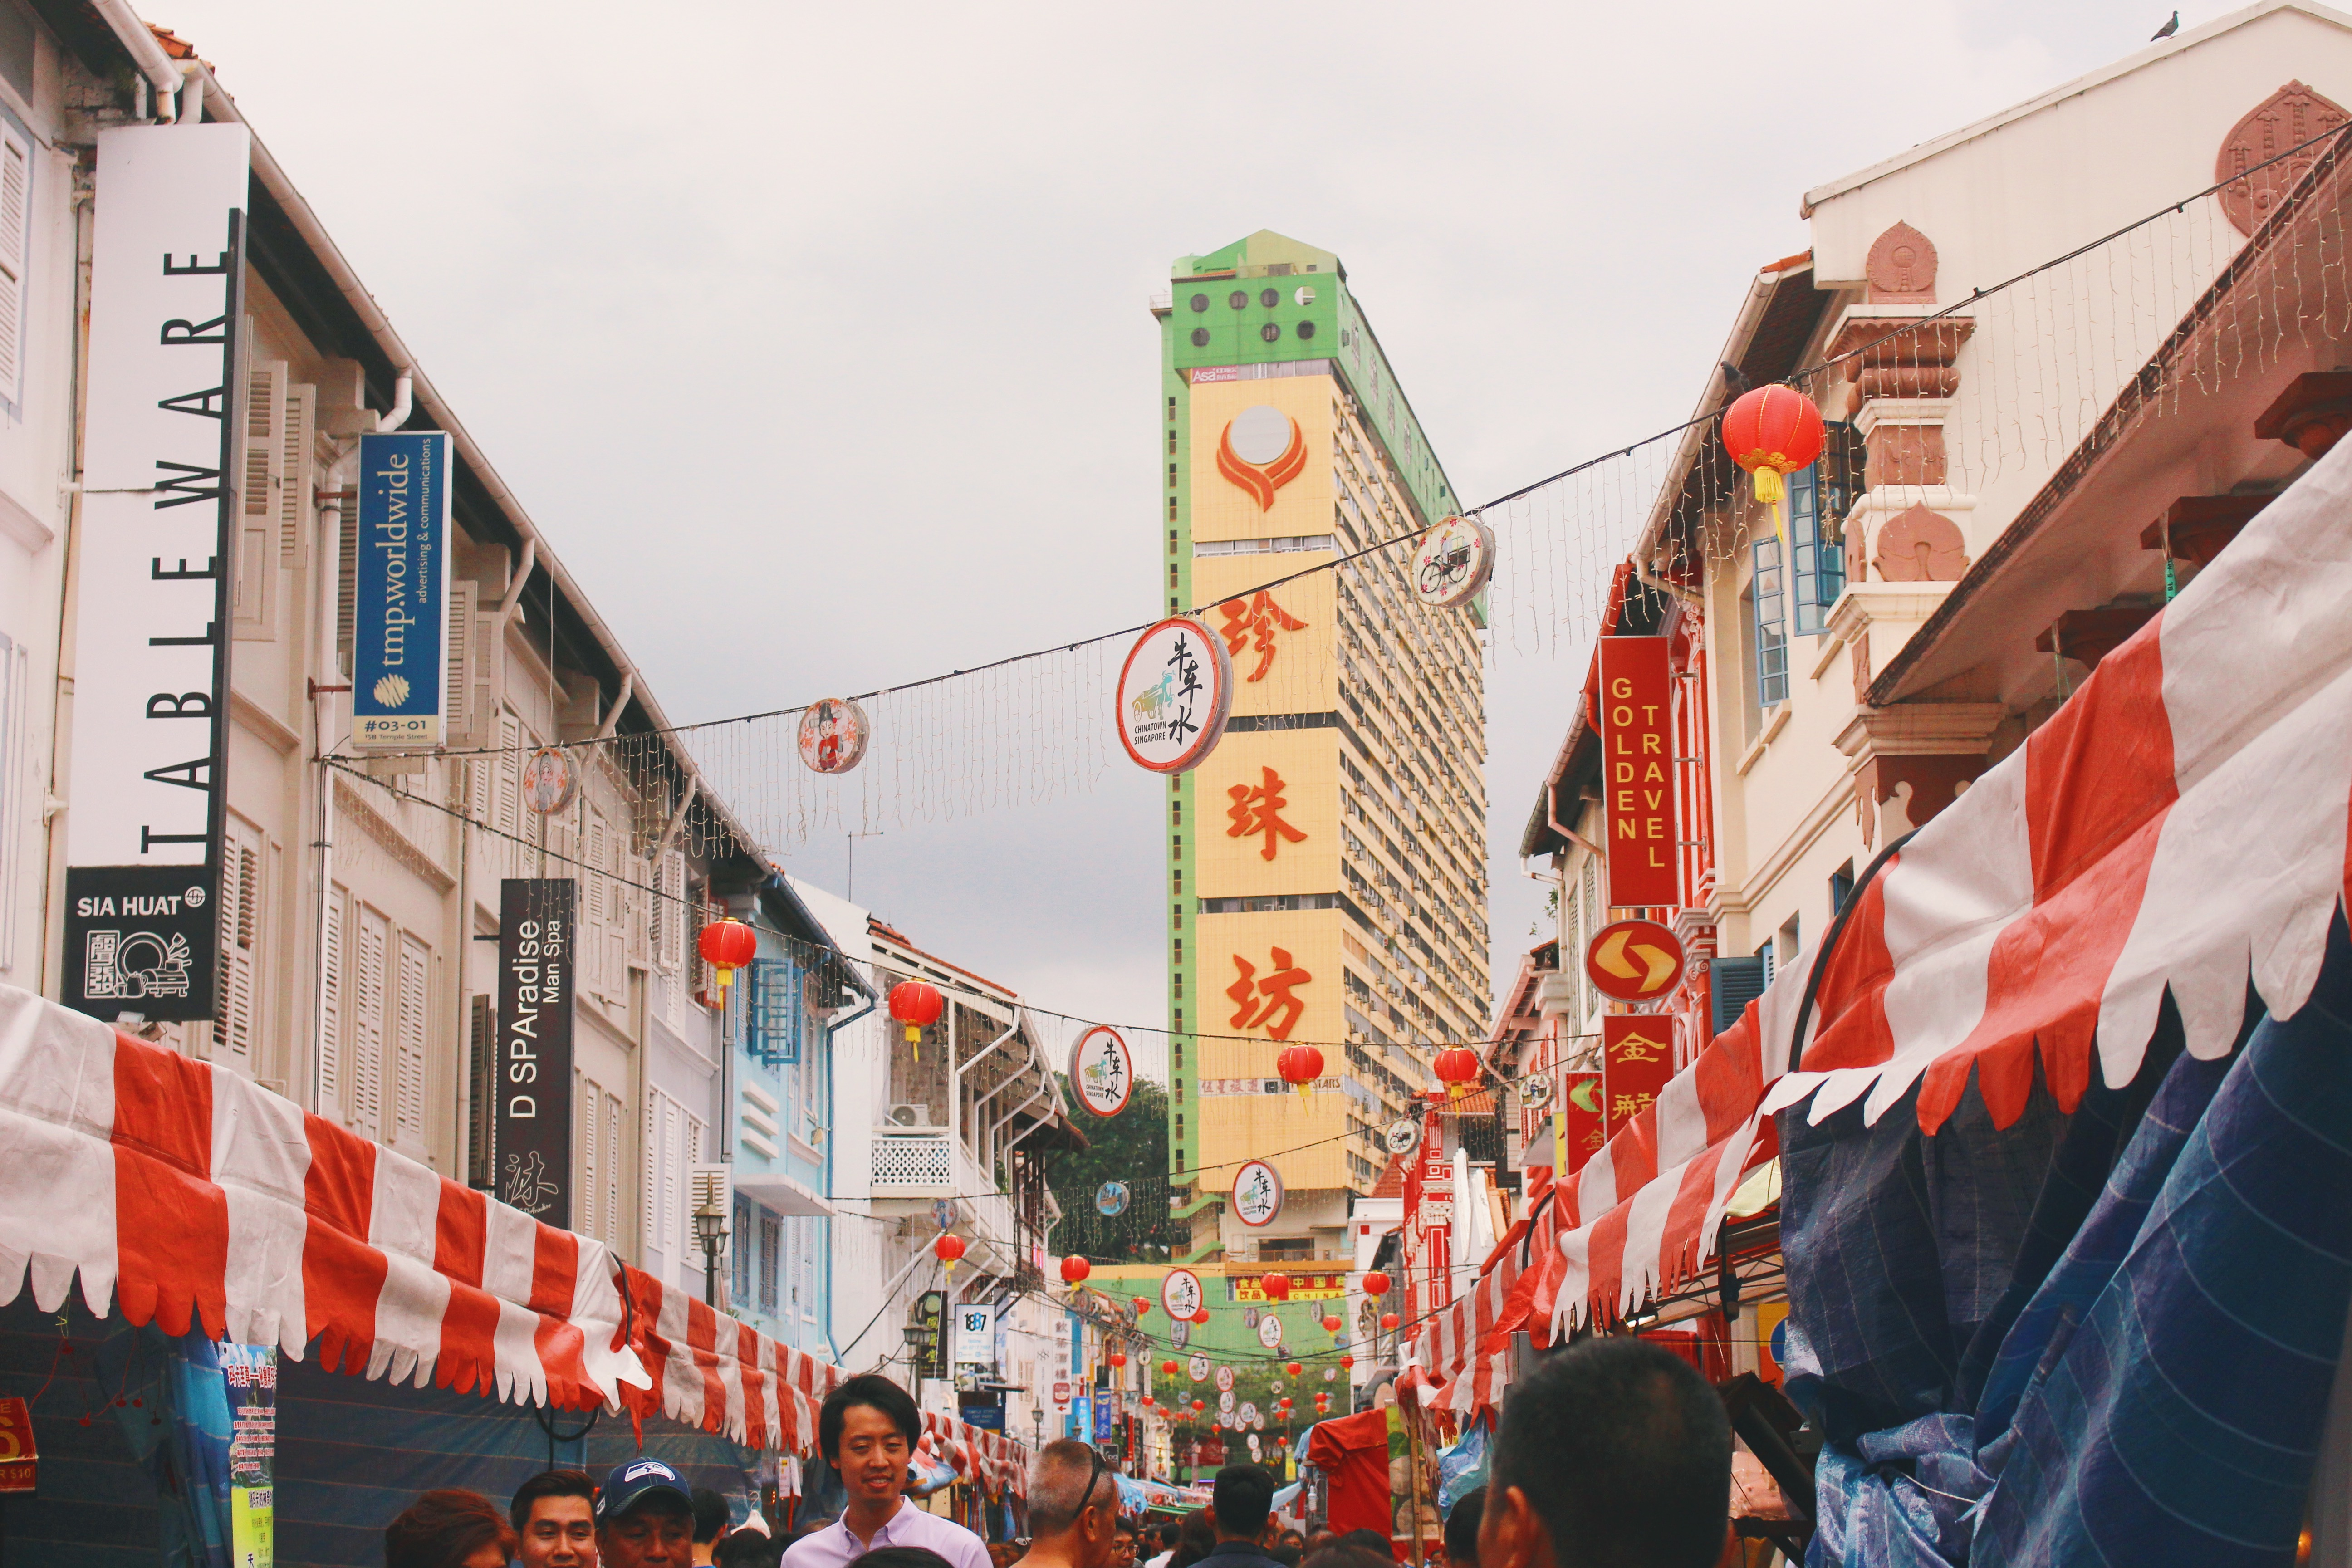 For the older generation, Chinatown remains the default shopping space for Chinese New Year goods. Photo: Connected to India